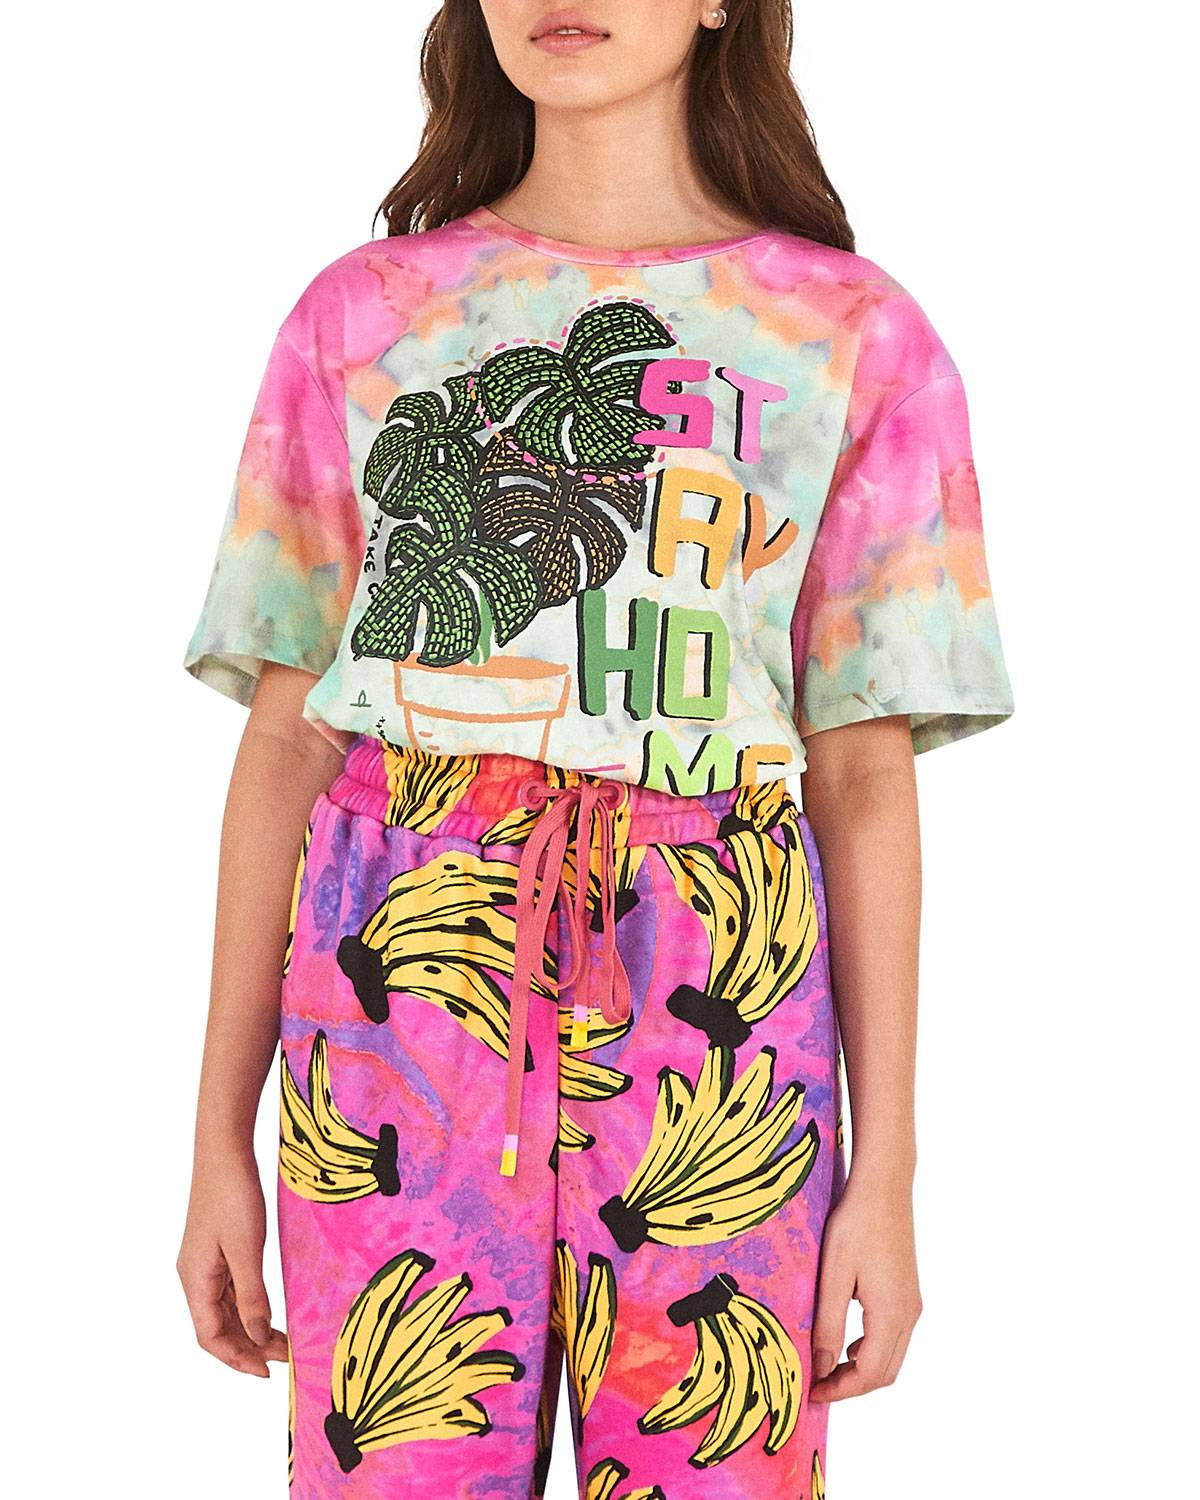 Rio Stay Home Tie-Dye Tee - Size: Extra Large